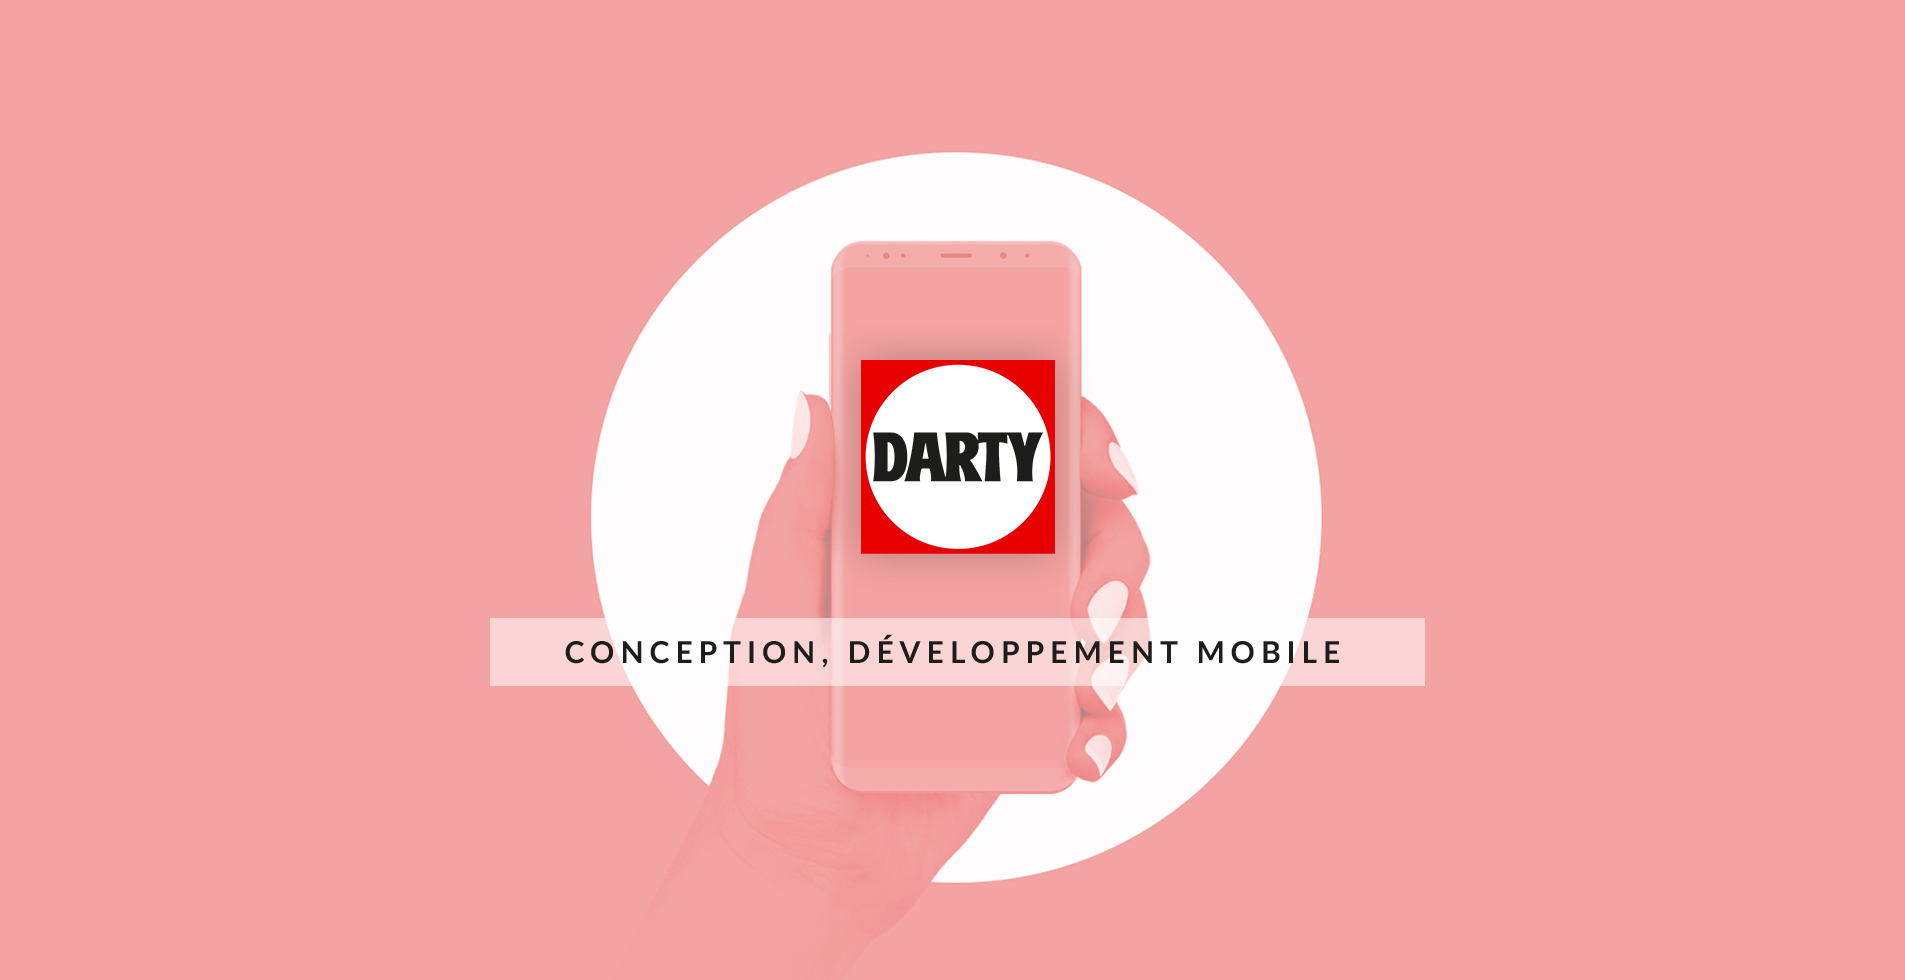 Conception et développement de l'application mobile Darty par l'agence web et mobile Majjane.